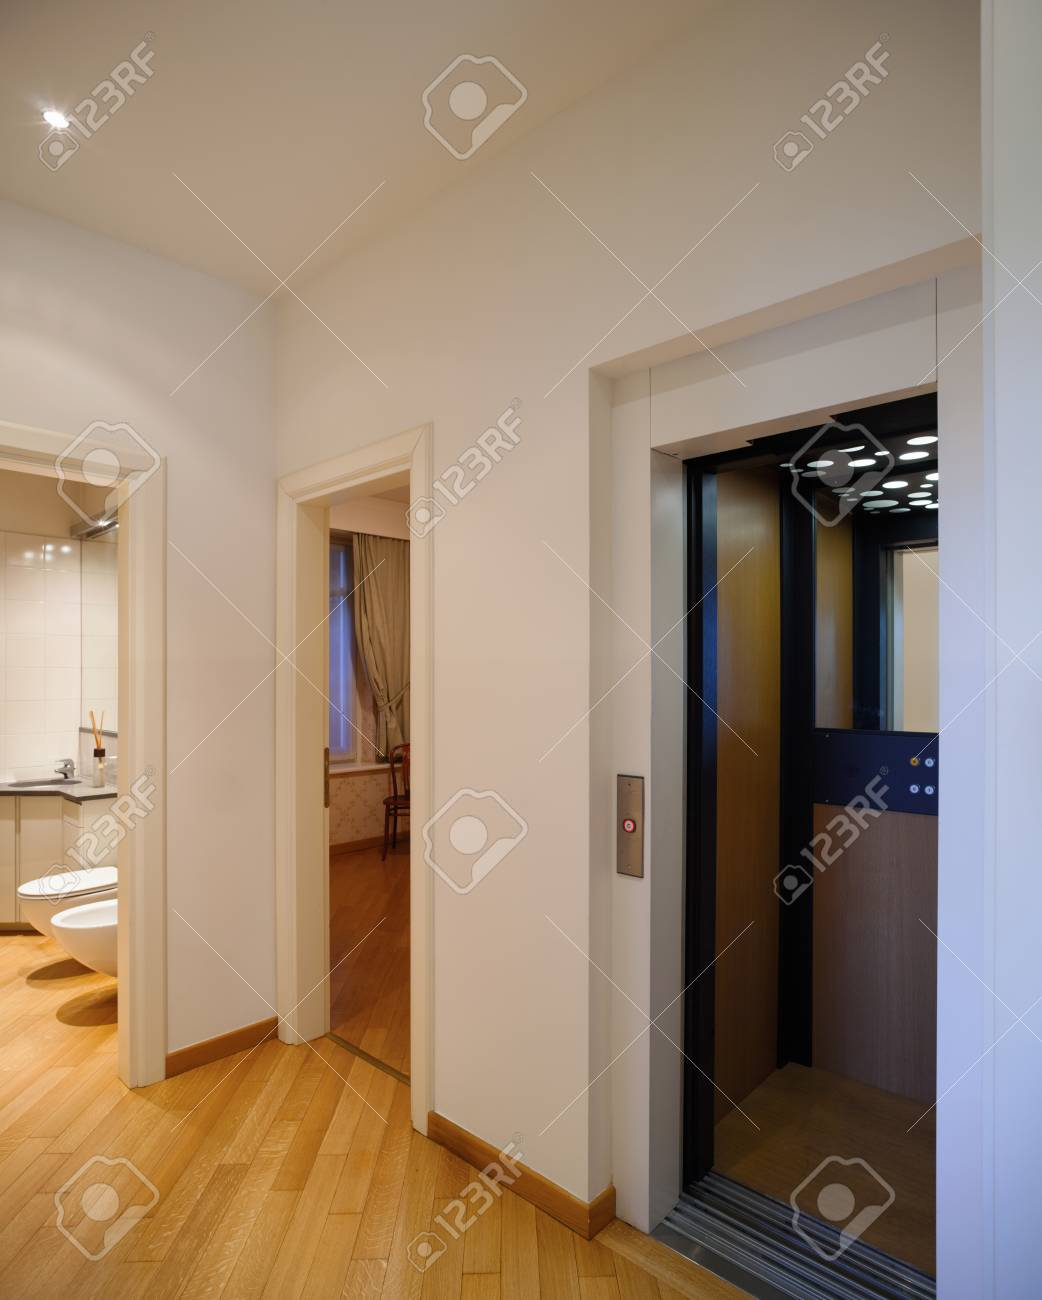 Passageway With Bathroom, Lift And An Empty Room With A Chair Stock ...